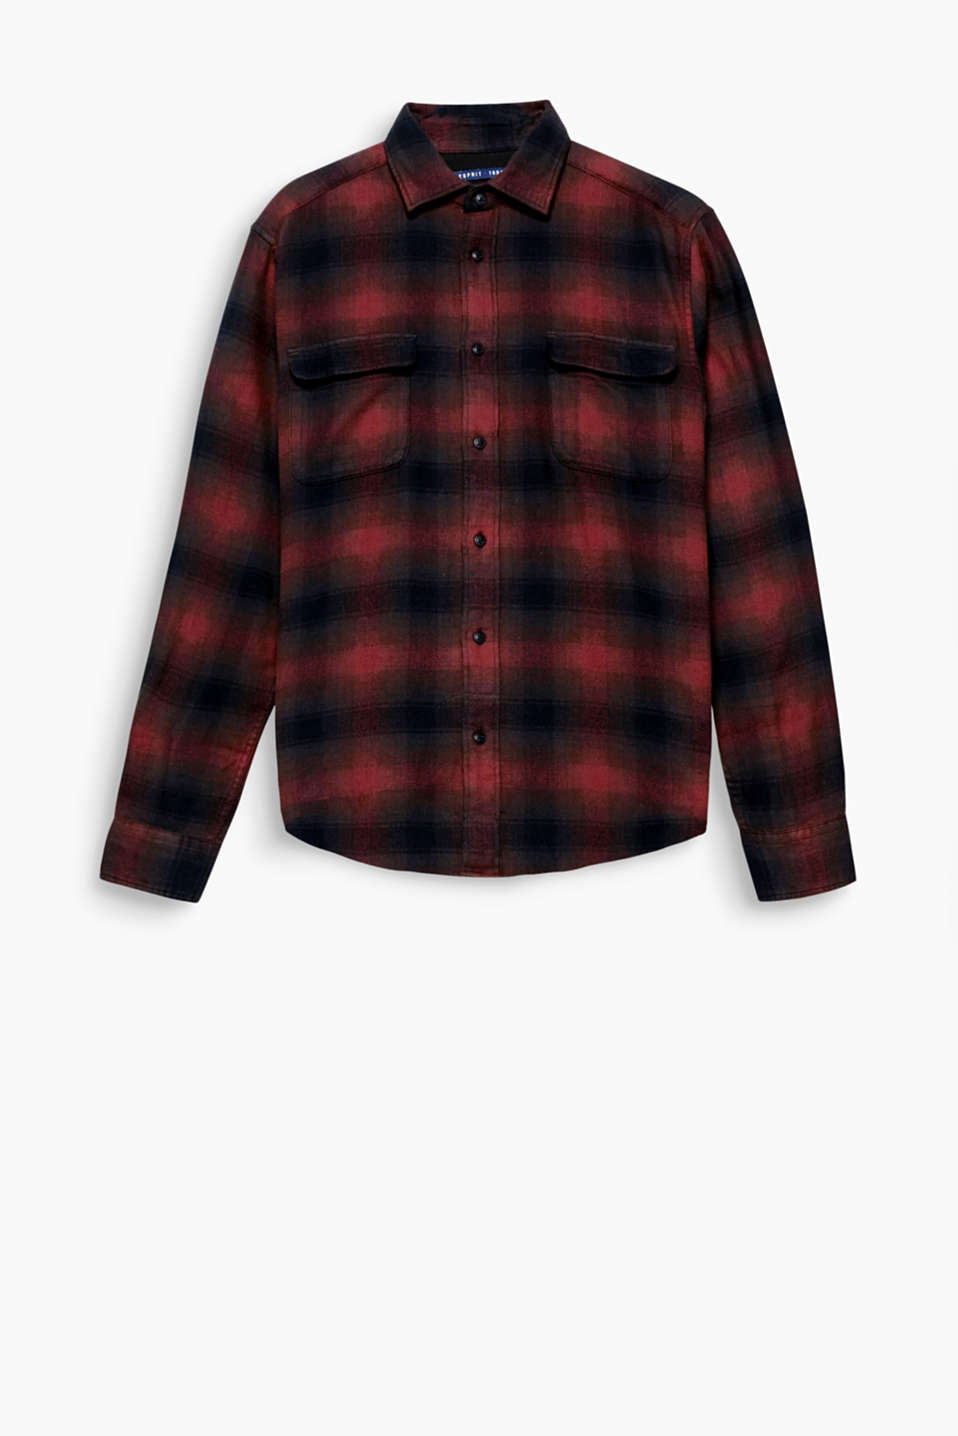 Whether you want a country look or a grunge vibe, this soft flannel shirt will be a favourite on cold days.